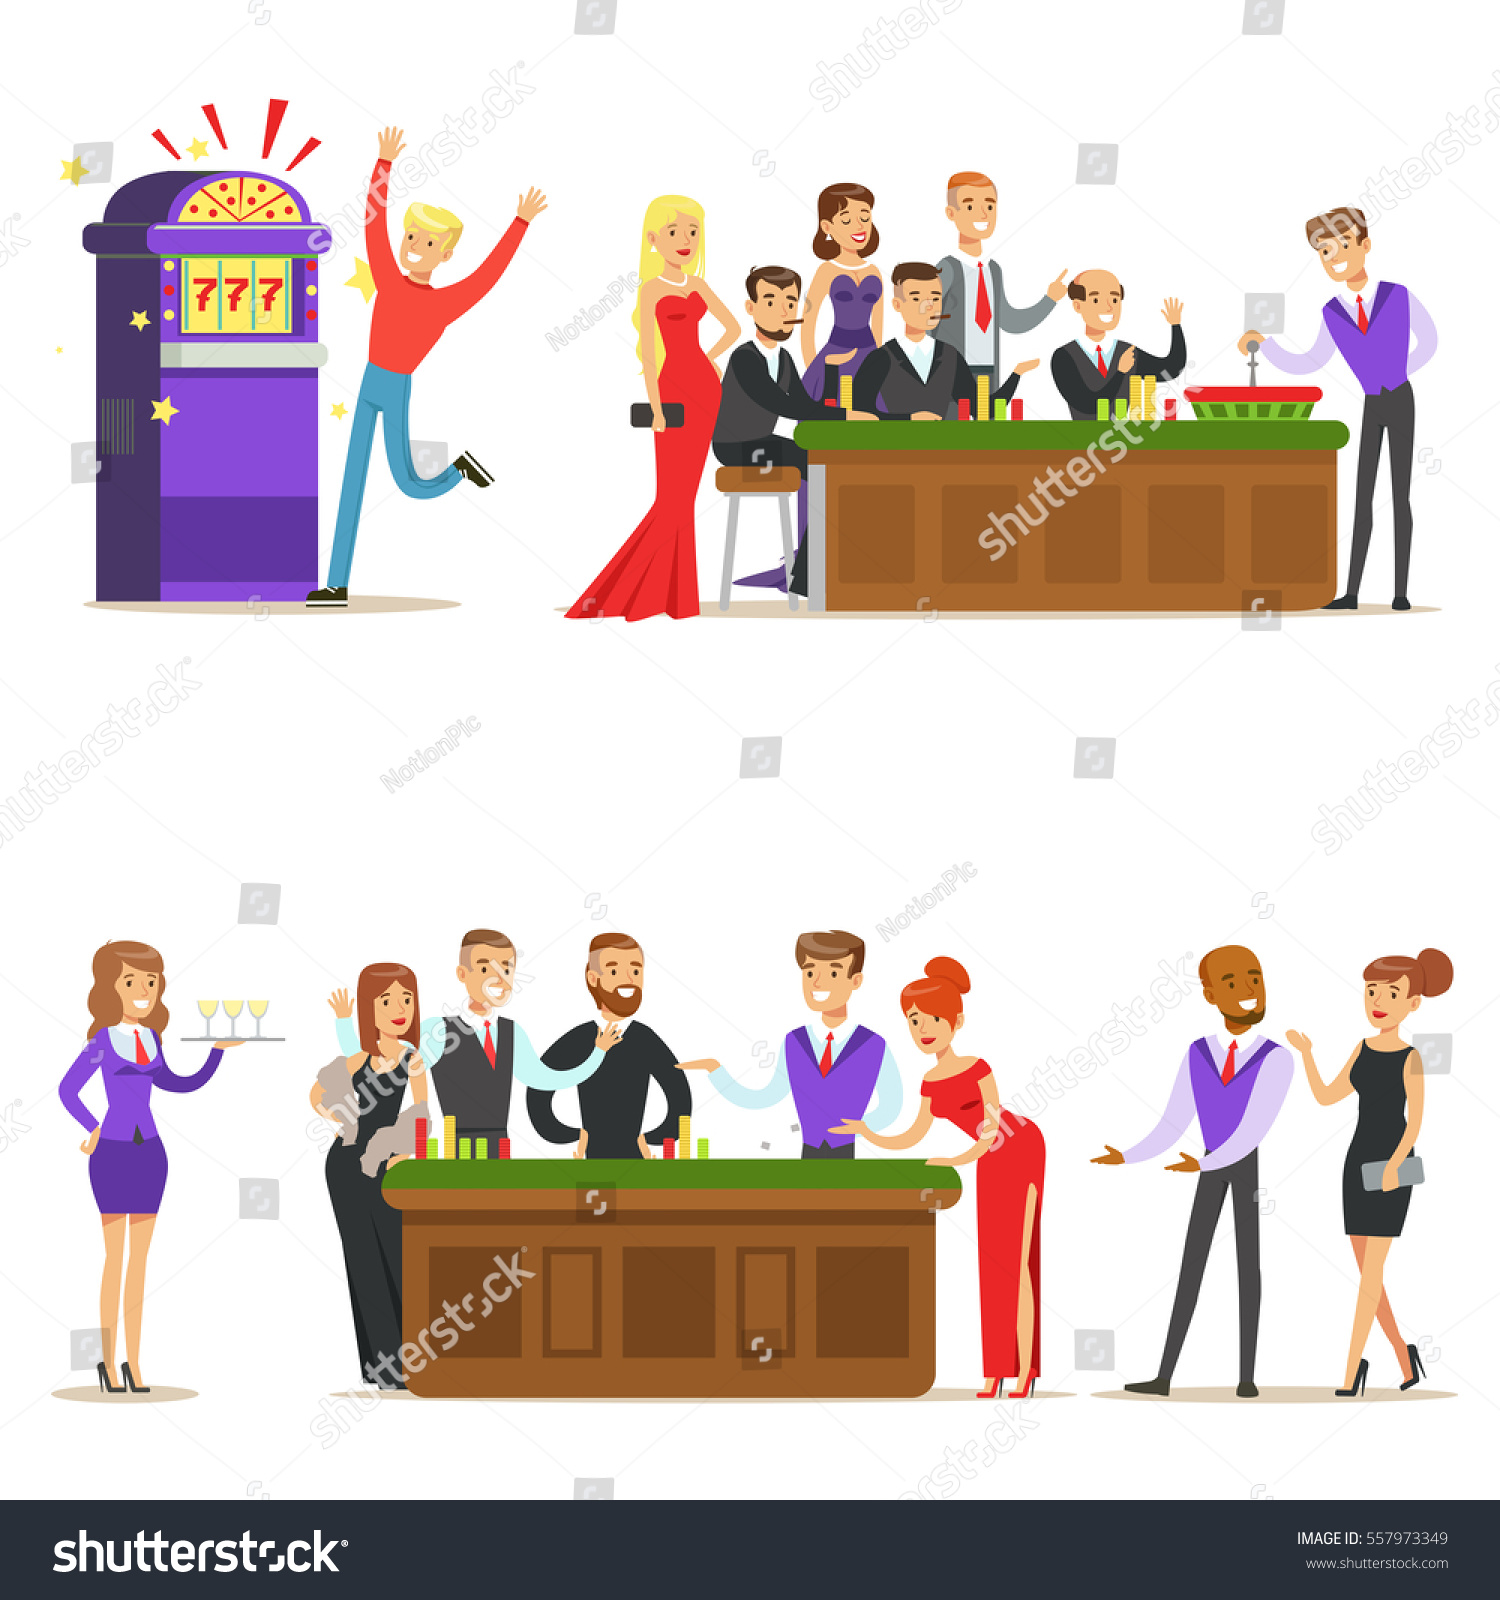 Business team cartoon characters cartoon vector cartoondealer com - Gamblers In Chic Casino In Vegas Playing Cards Roulette And Slot Machine Smiling Players